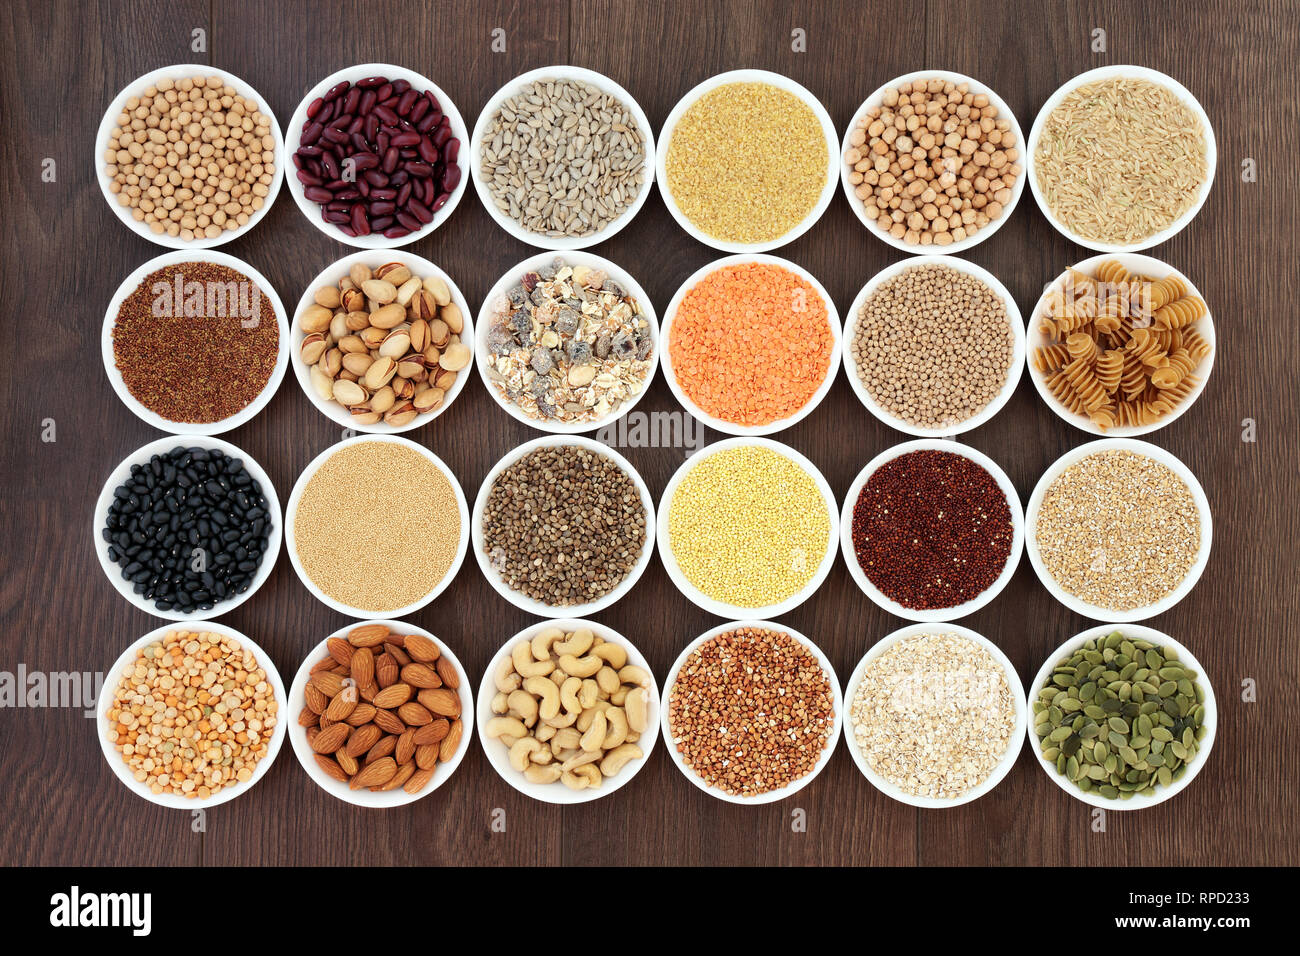 Dried vegan health food with  grains, nuts, seeds, sos mix, cereals, wholegrain pasta and legumes. Stock Photo